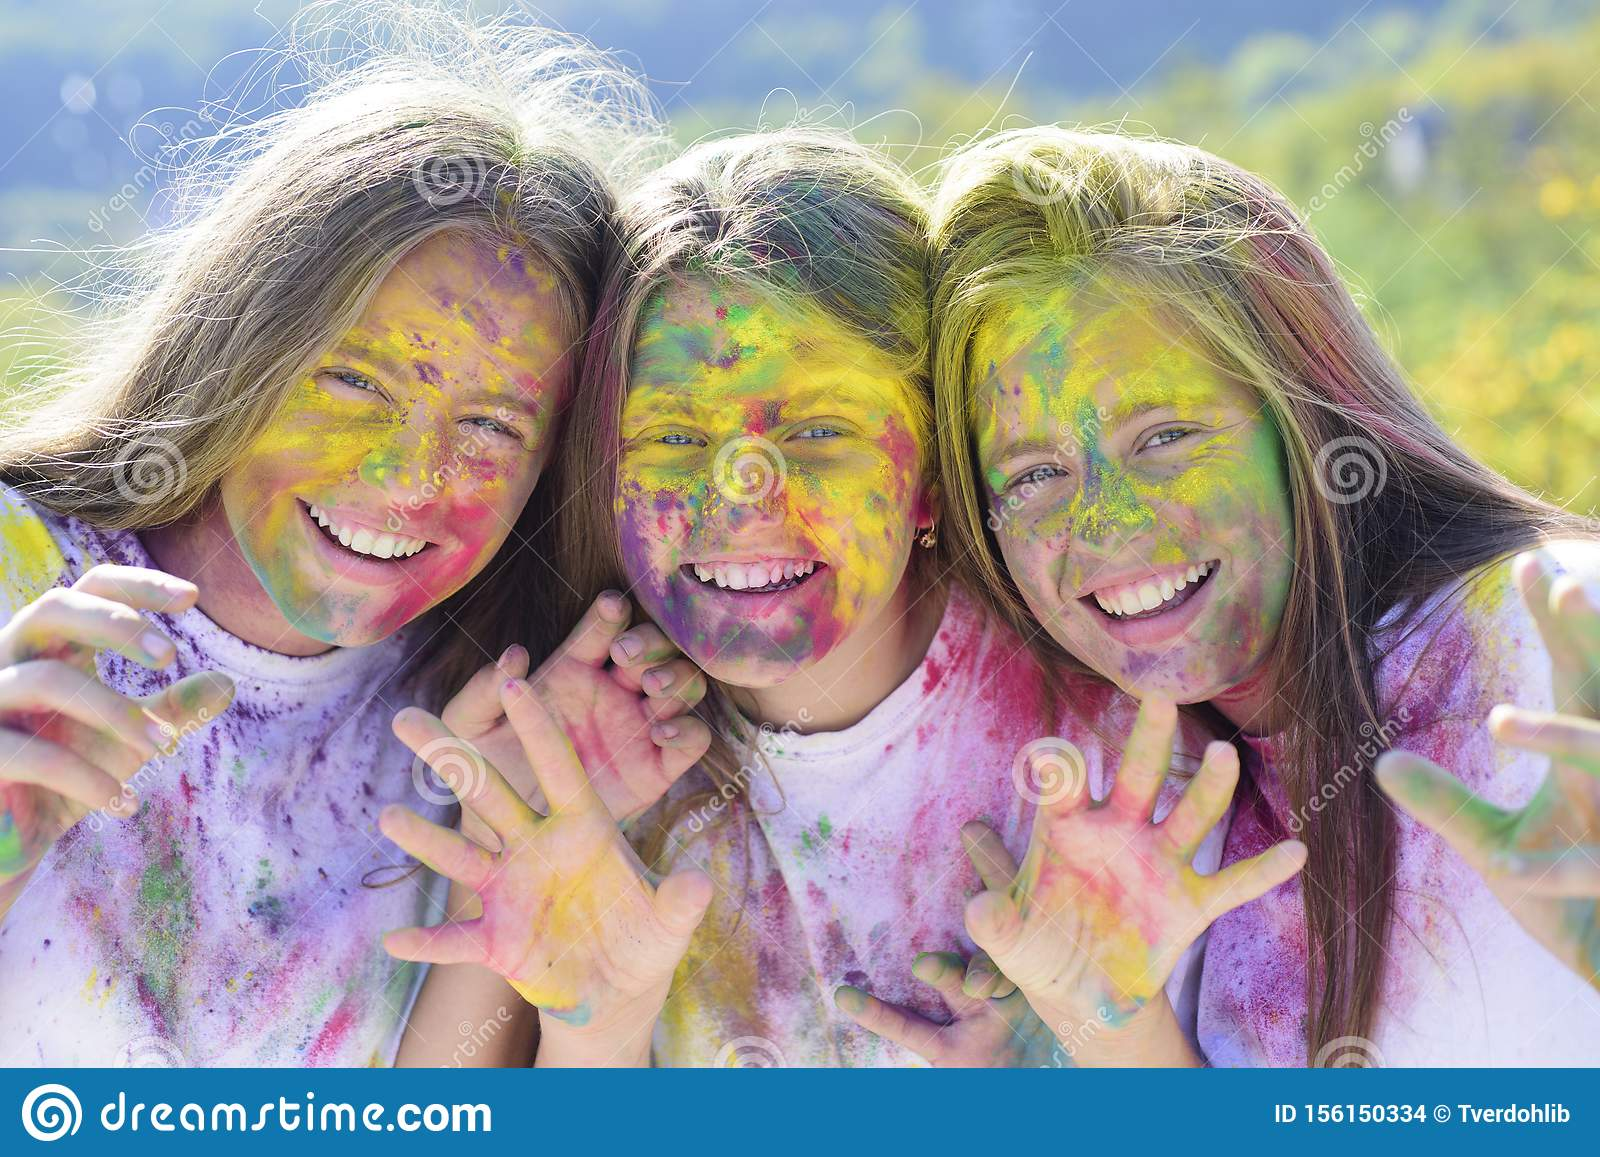 Children with creative body art. Crazy hipster girls. Summer weather. positive and cheerful. colorful neon paint makeup